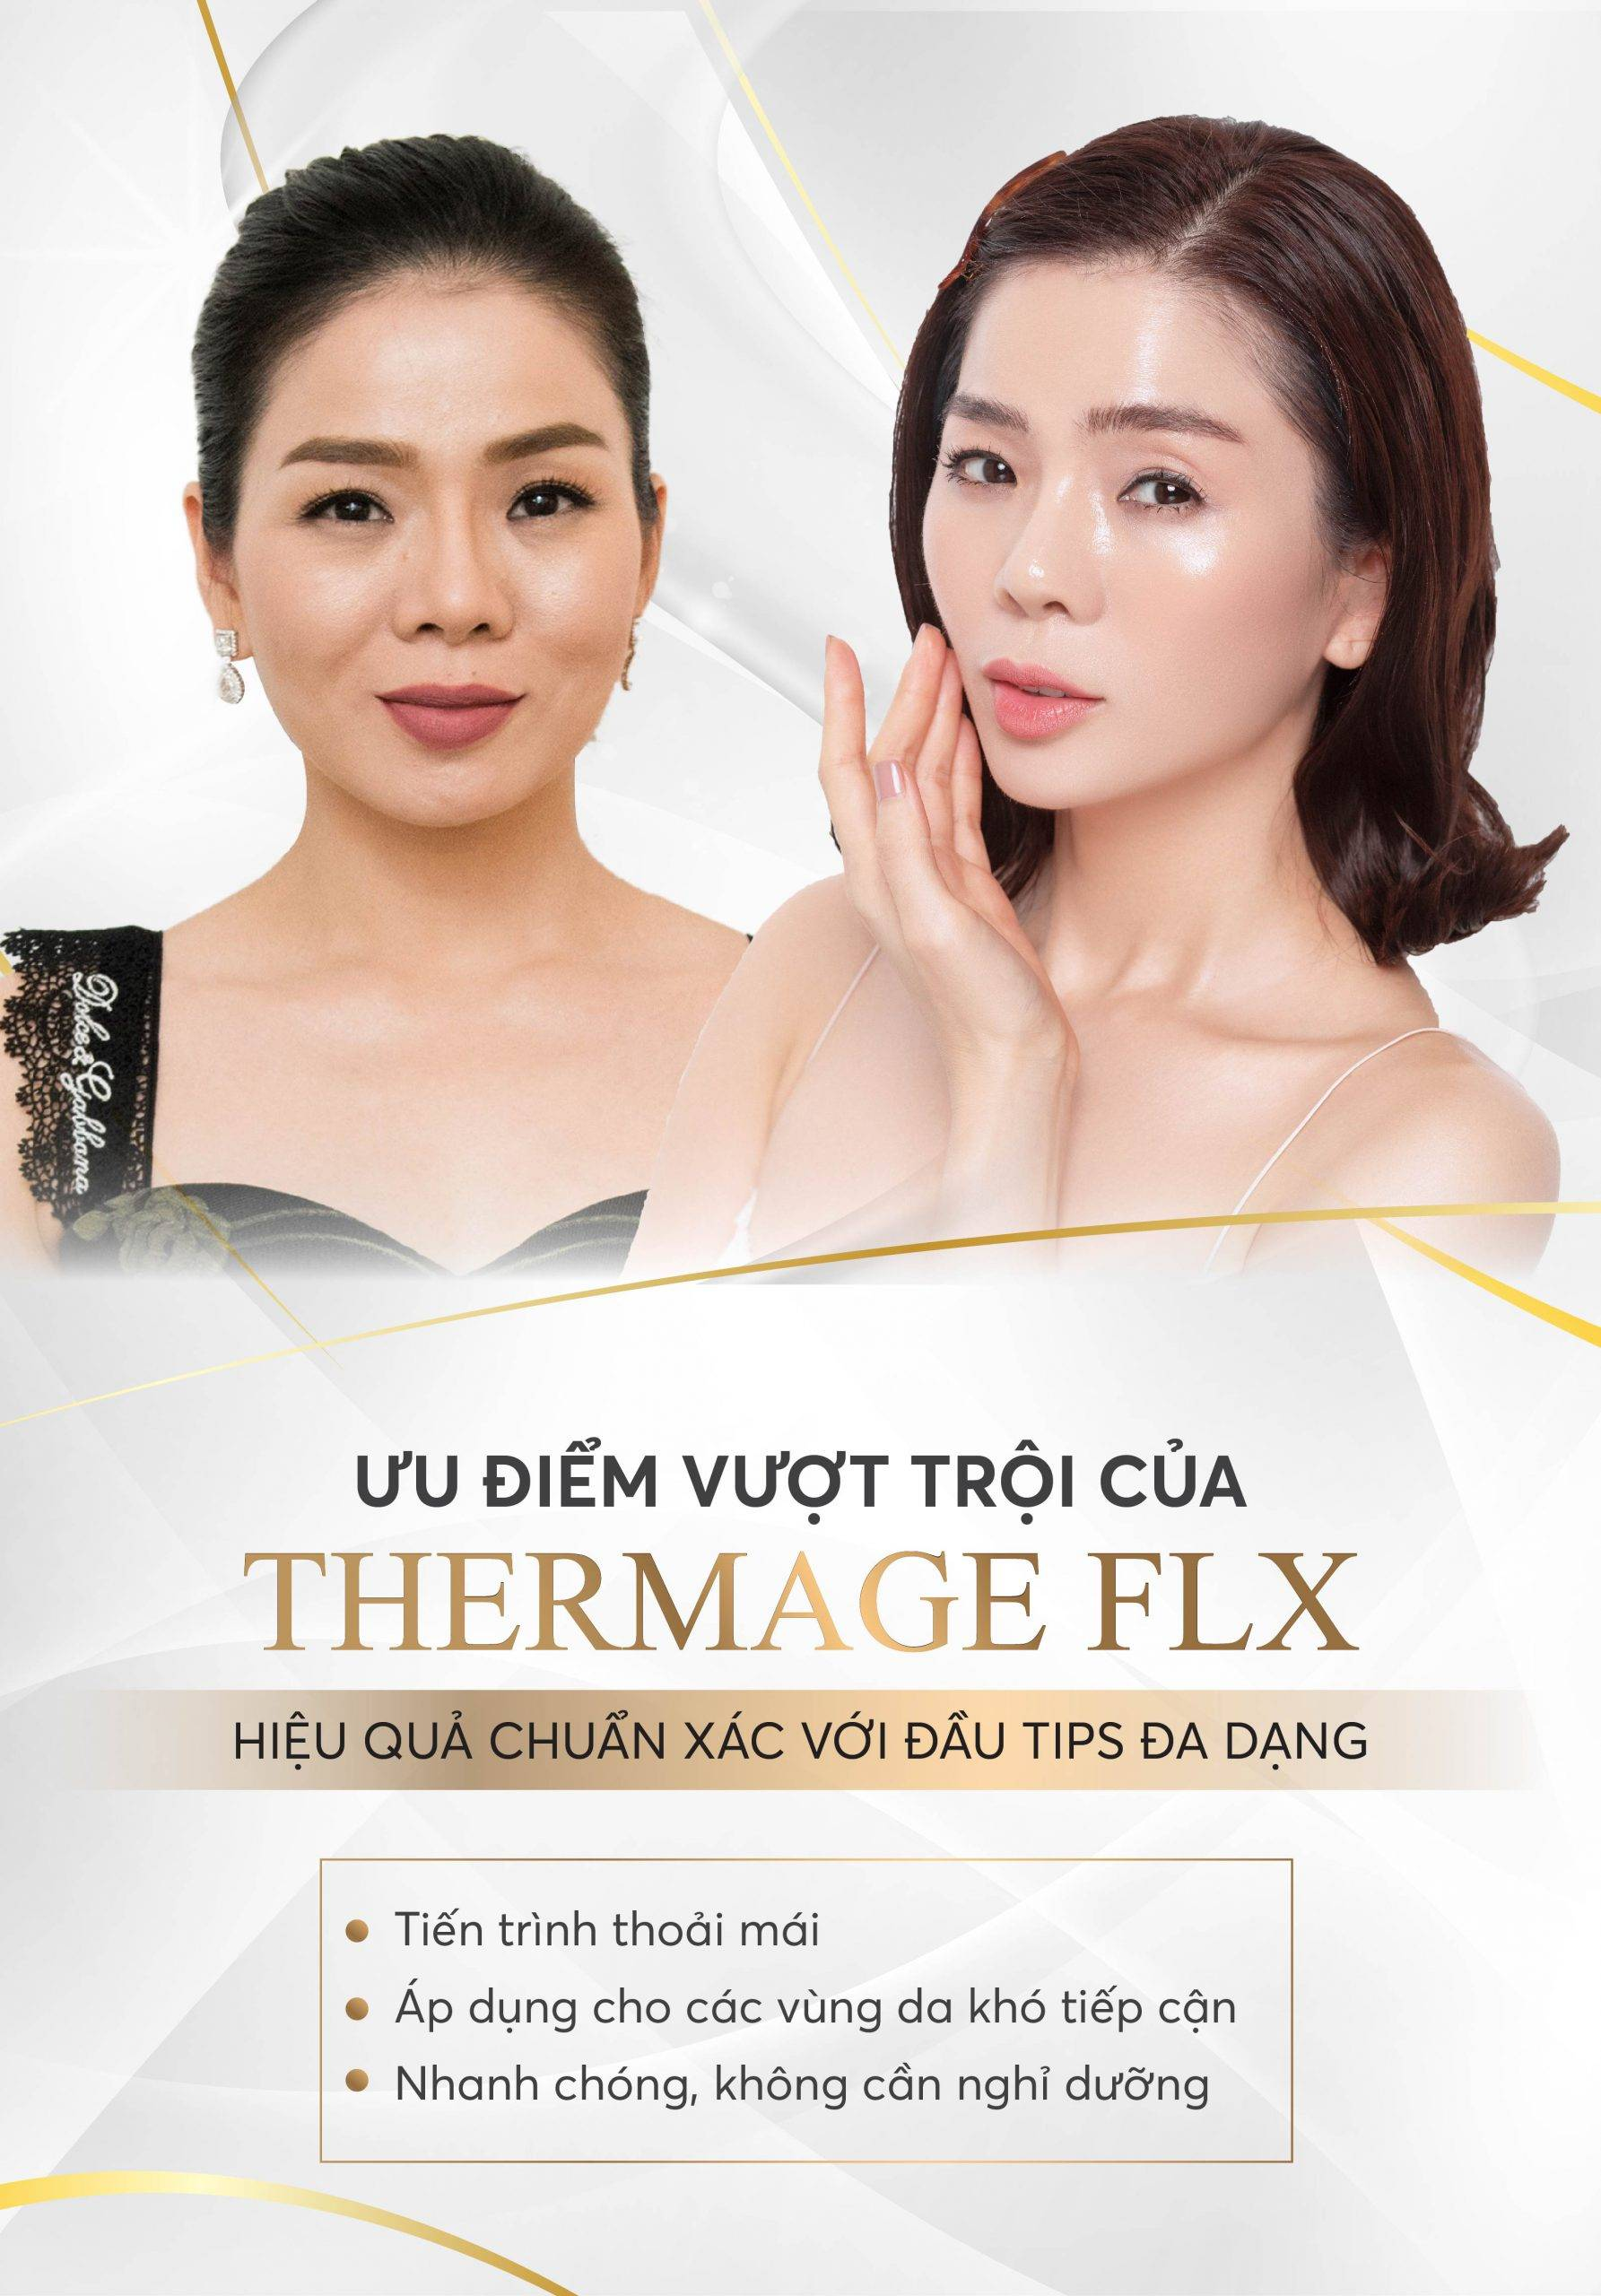 mobile-thermage-flx-3